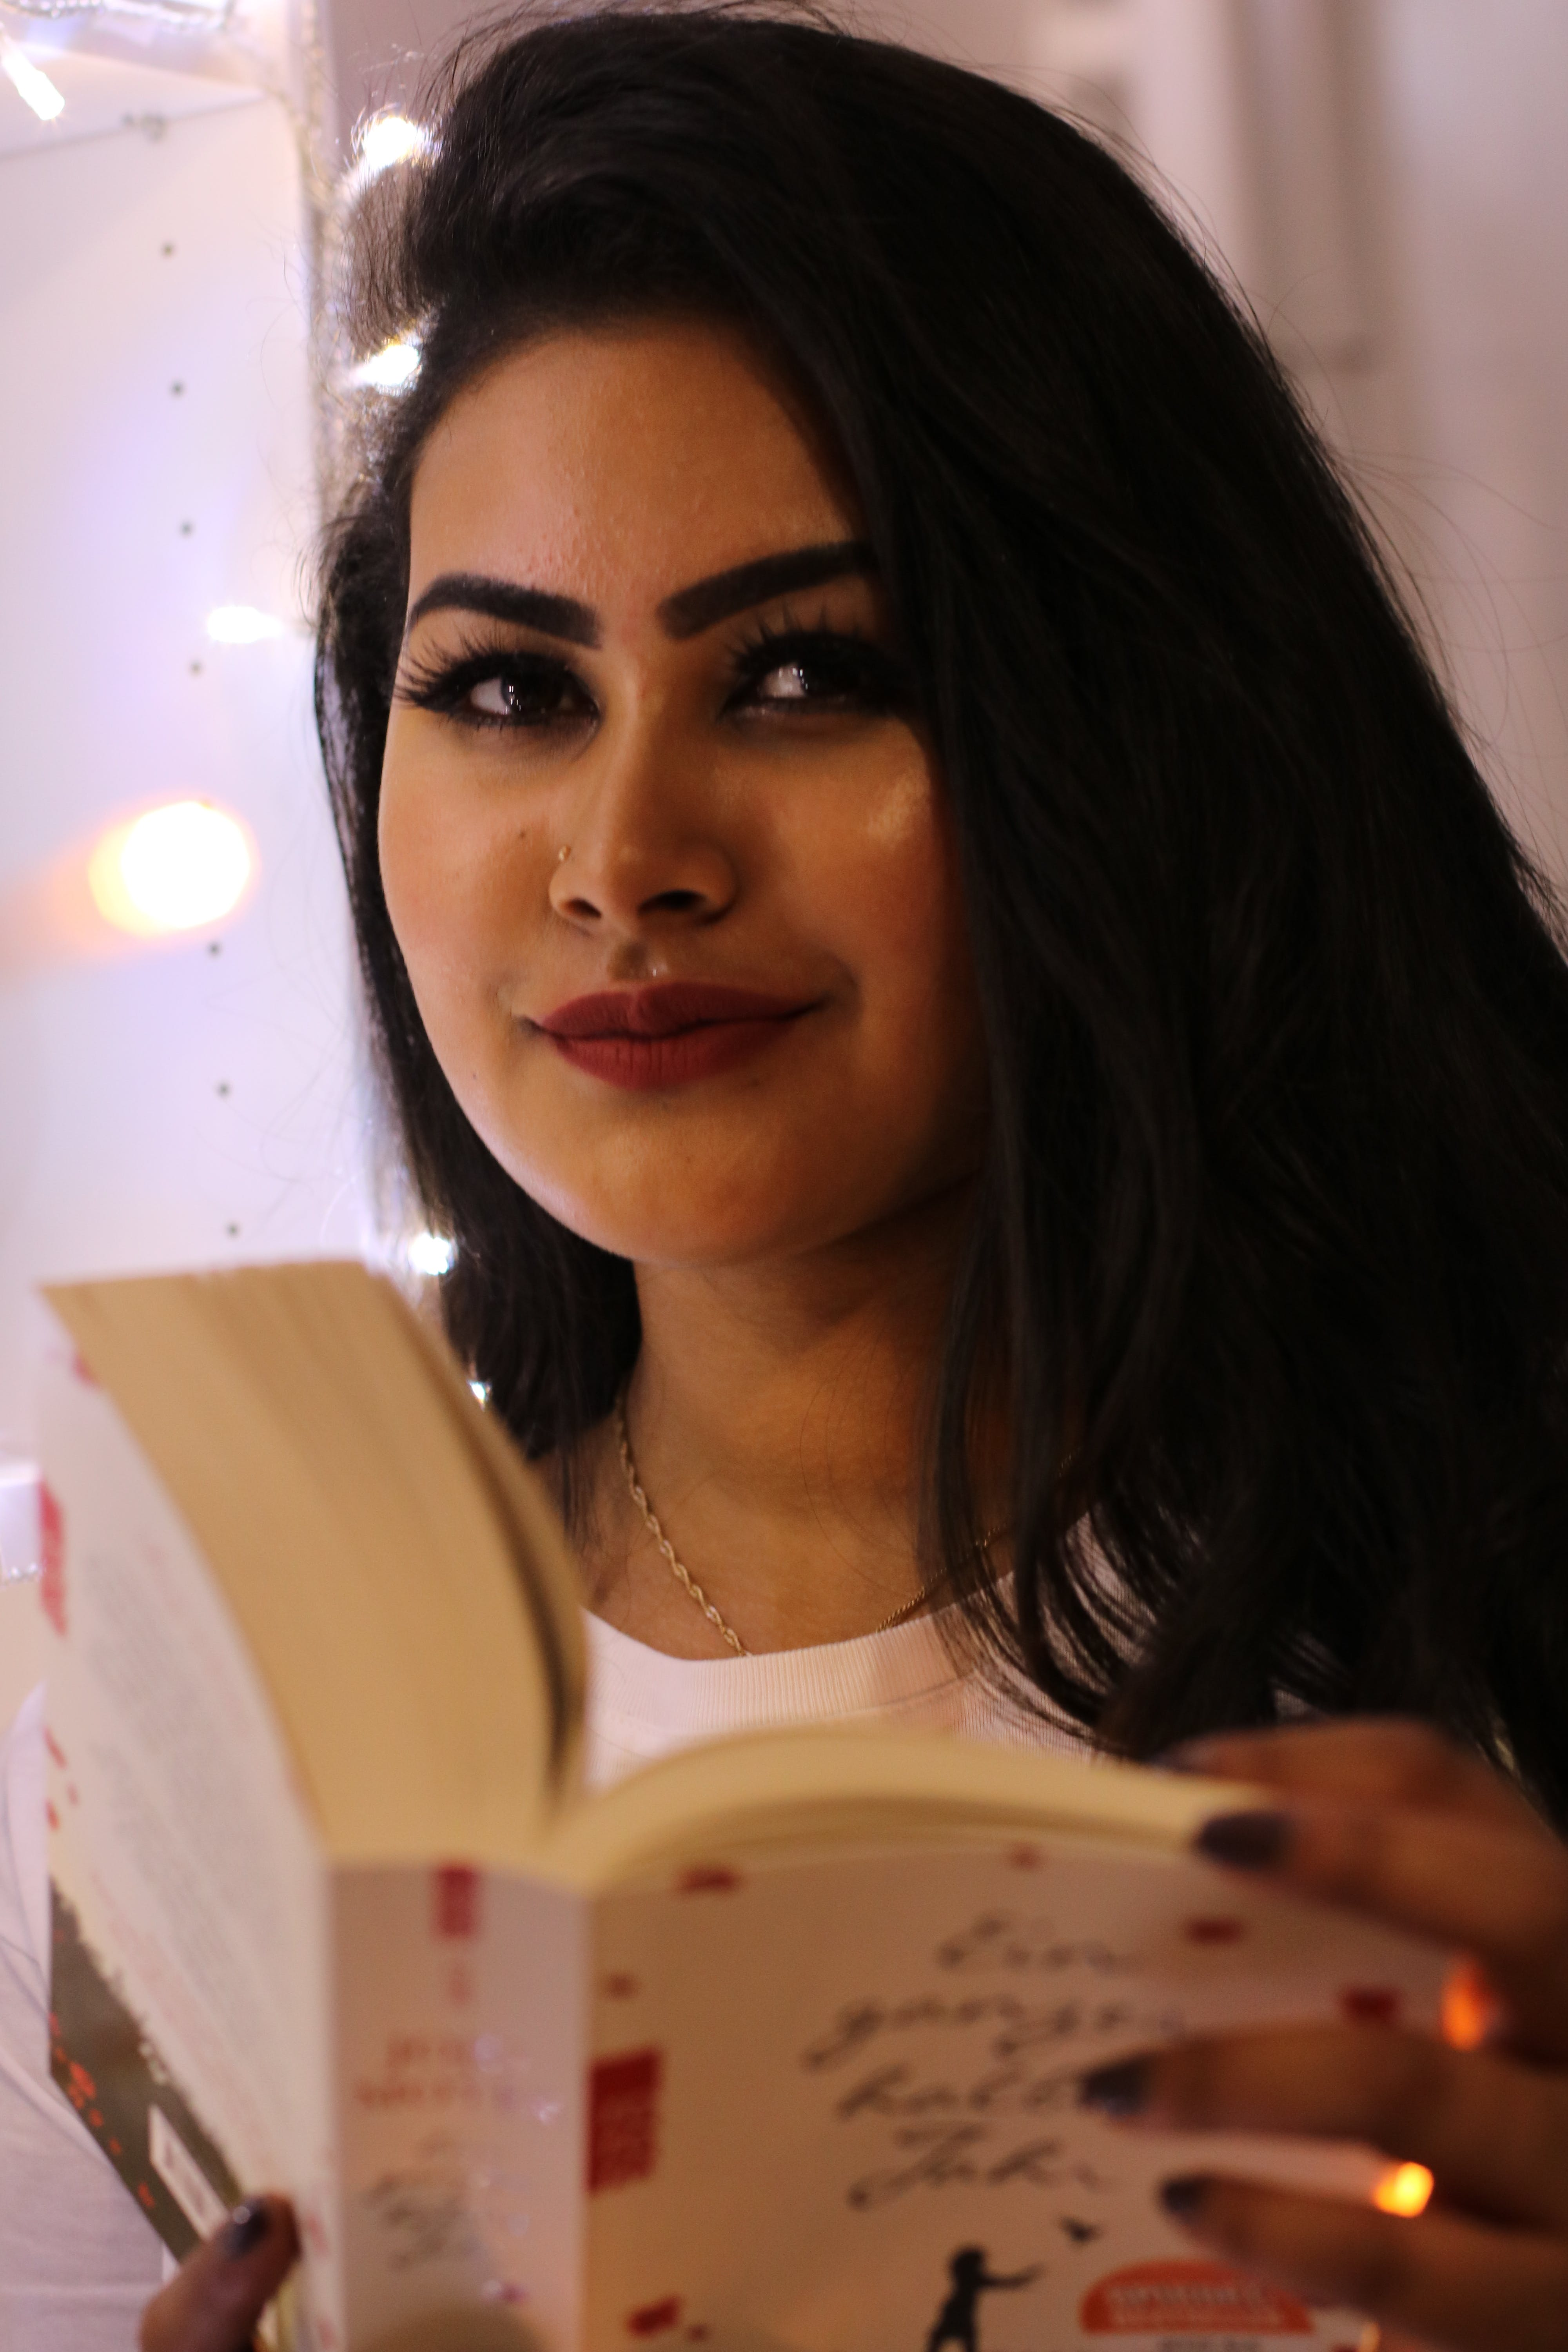 Black Haired Smiling Woman Holding Book